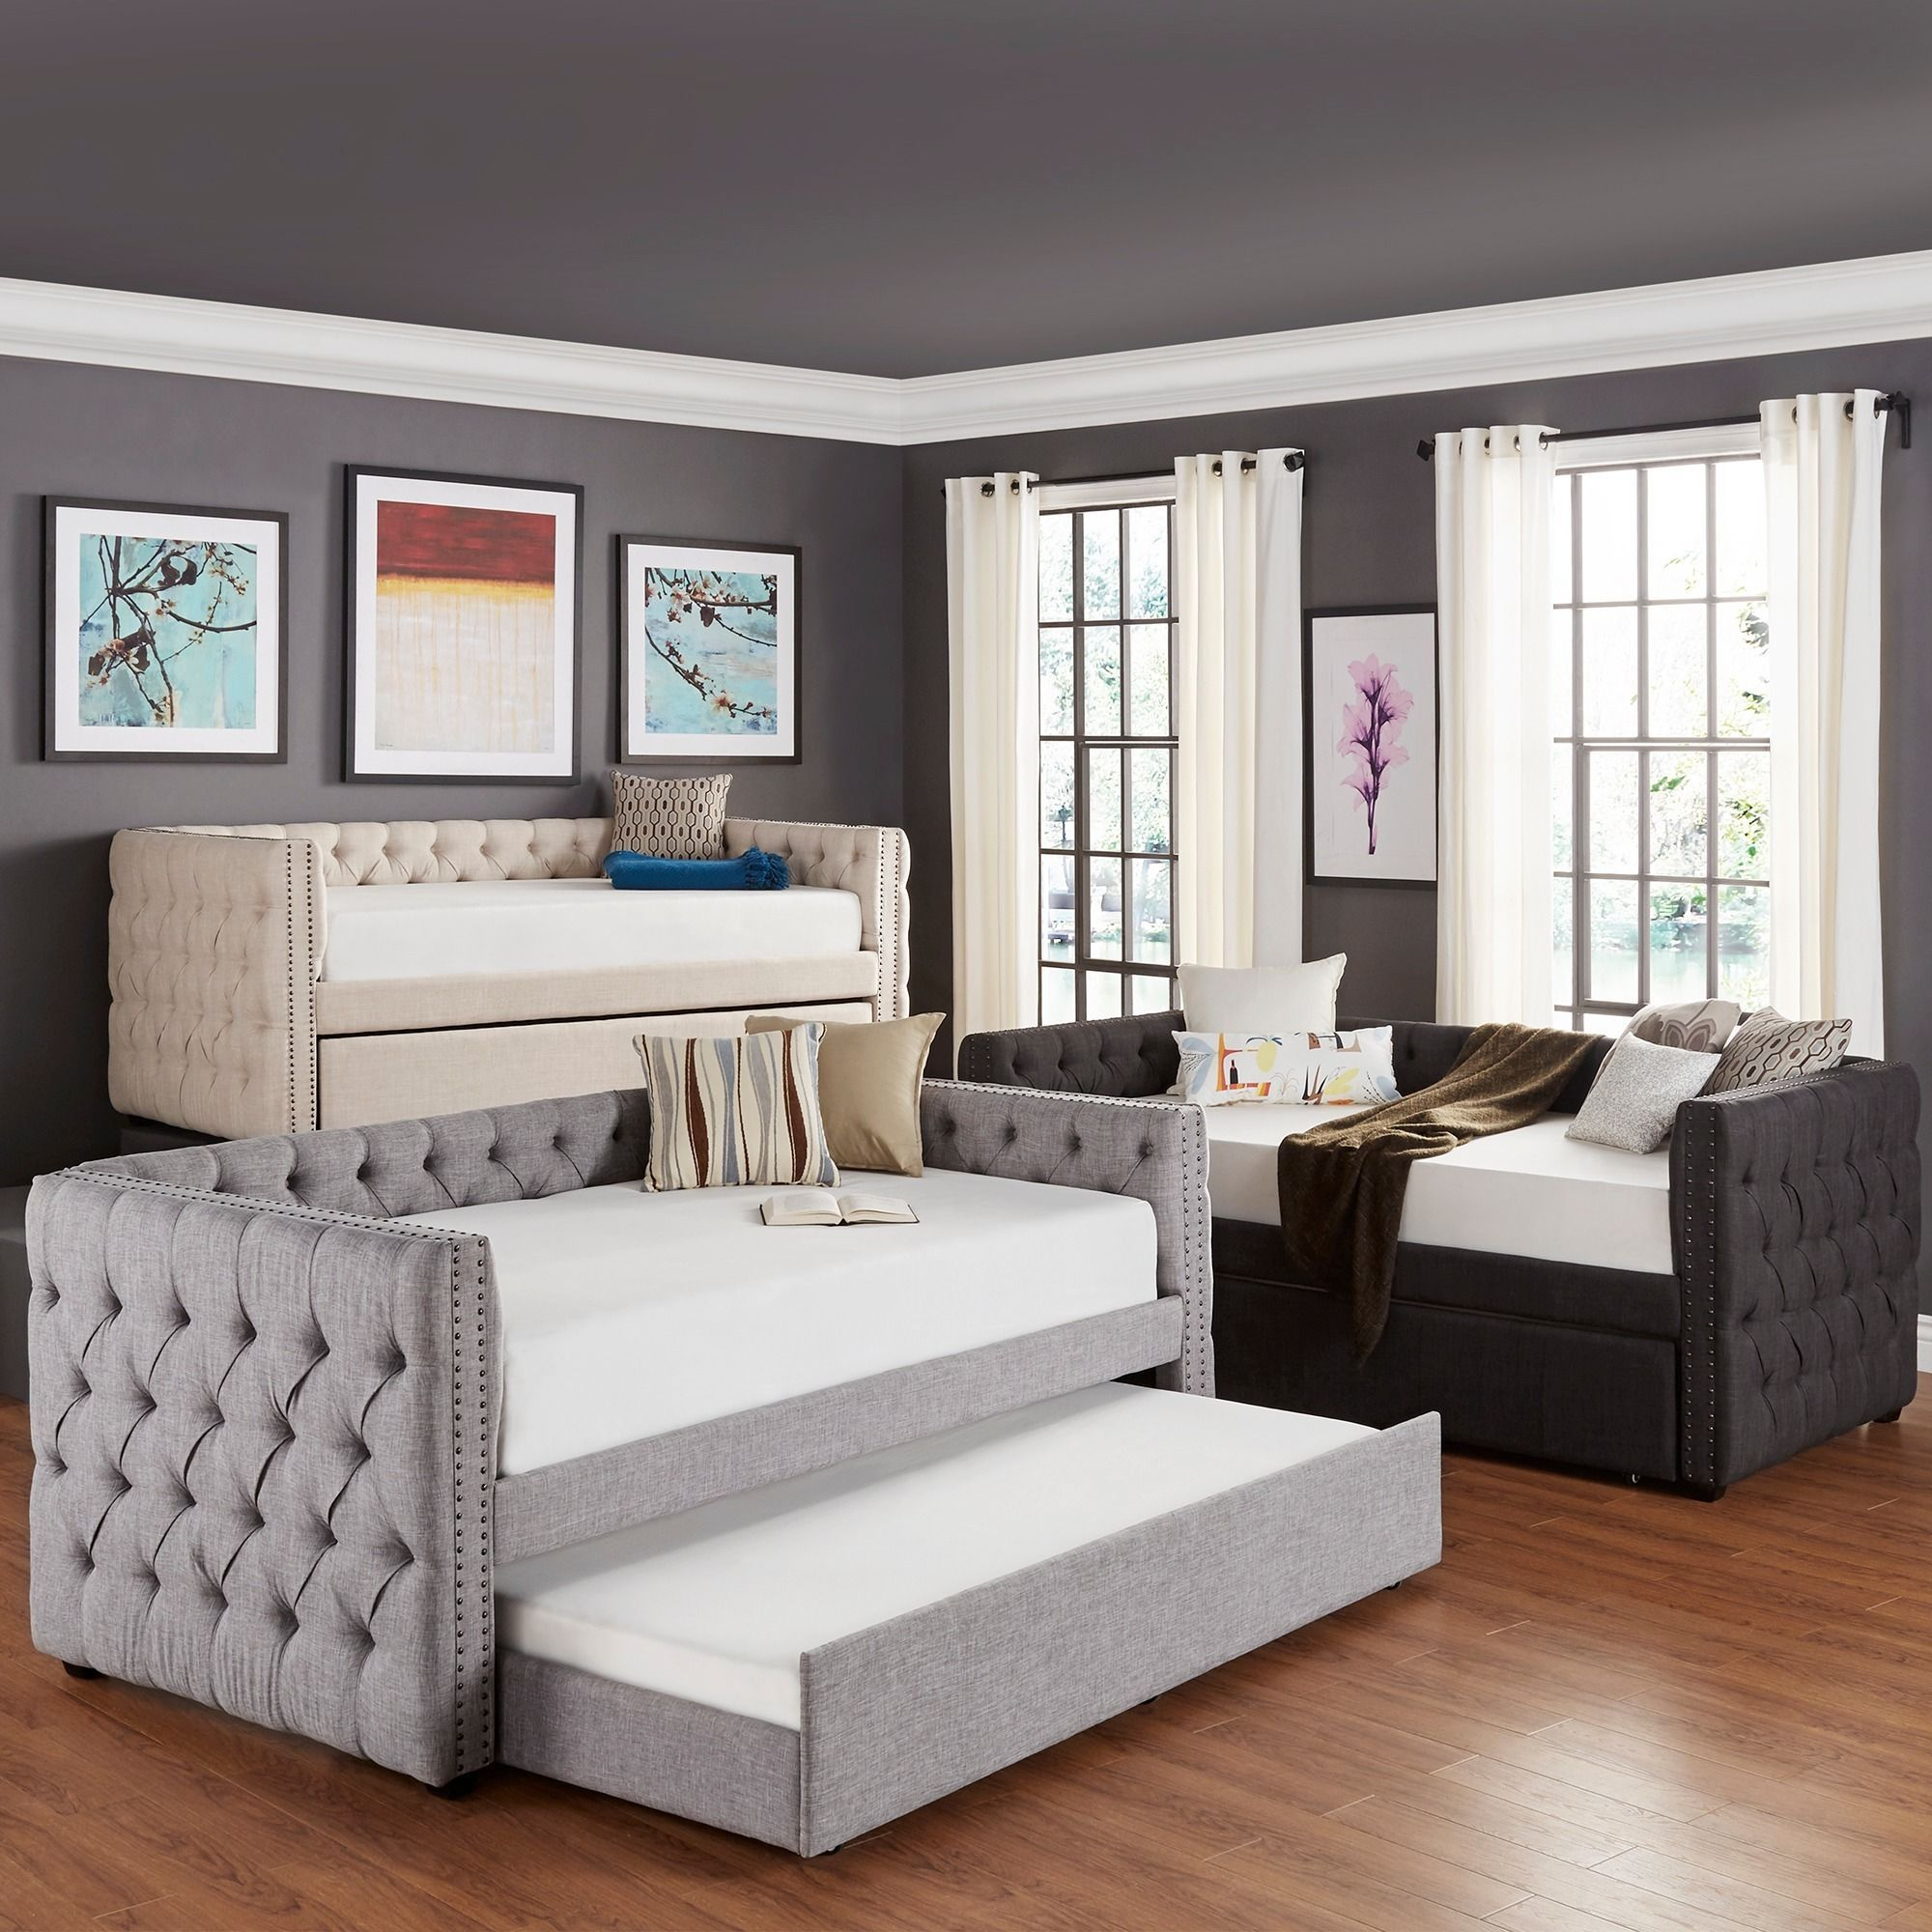 this daybed with trundle is a perfect choice for a guest room or